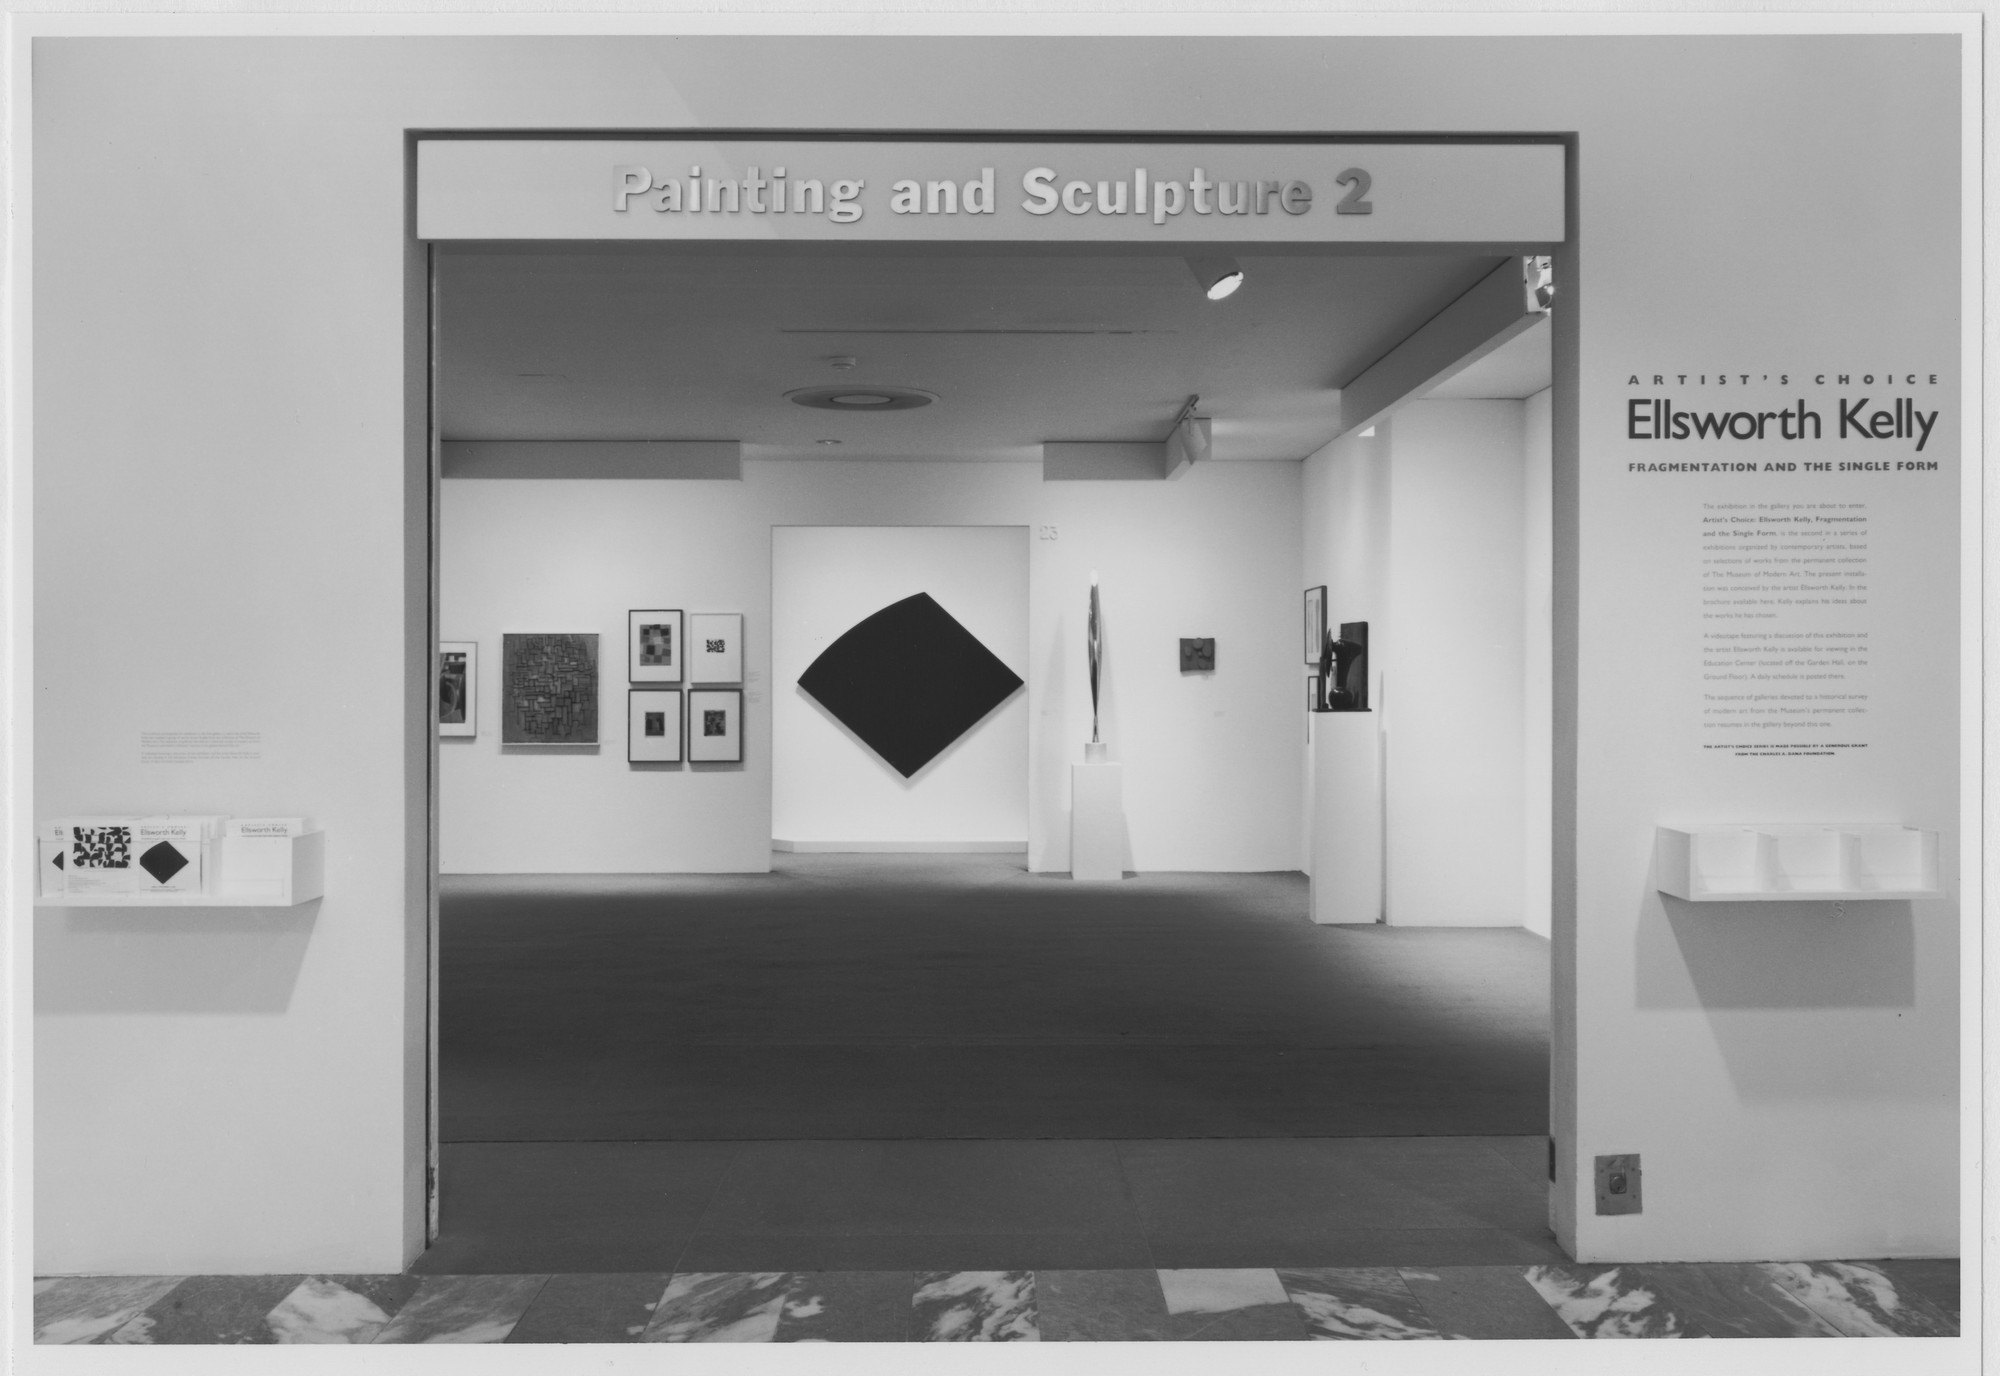 "Installation view of the exhibition, ""Artist's Choice: Ellsworth Kelly Fragmentation and the Single Form"" June 15, 1990–September 4, 1990. Photographic Archive. The Museum of Modern Art Archives, New York. IN1551.1. Photograph by Mali Olatunji."